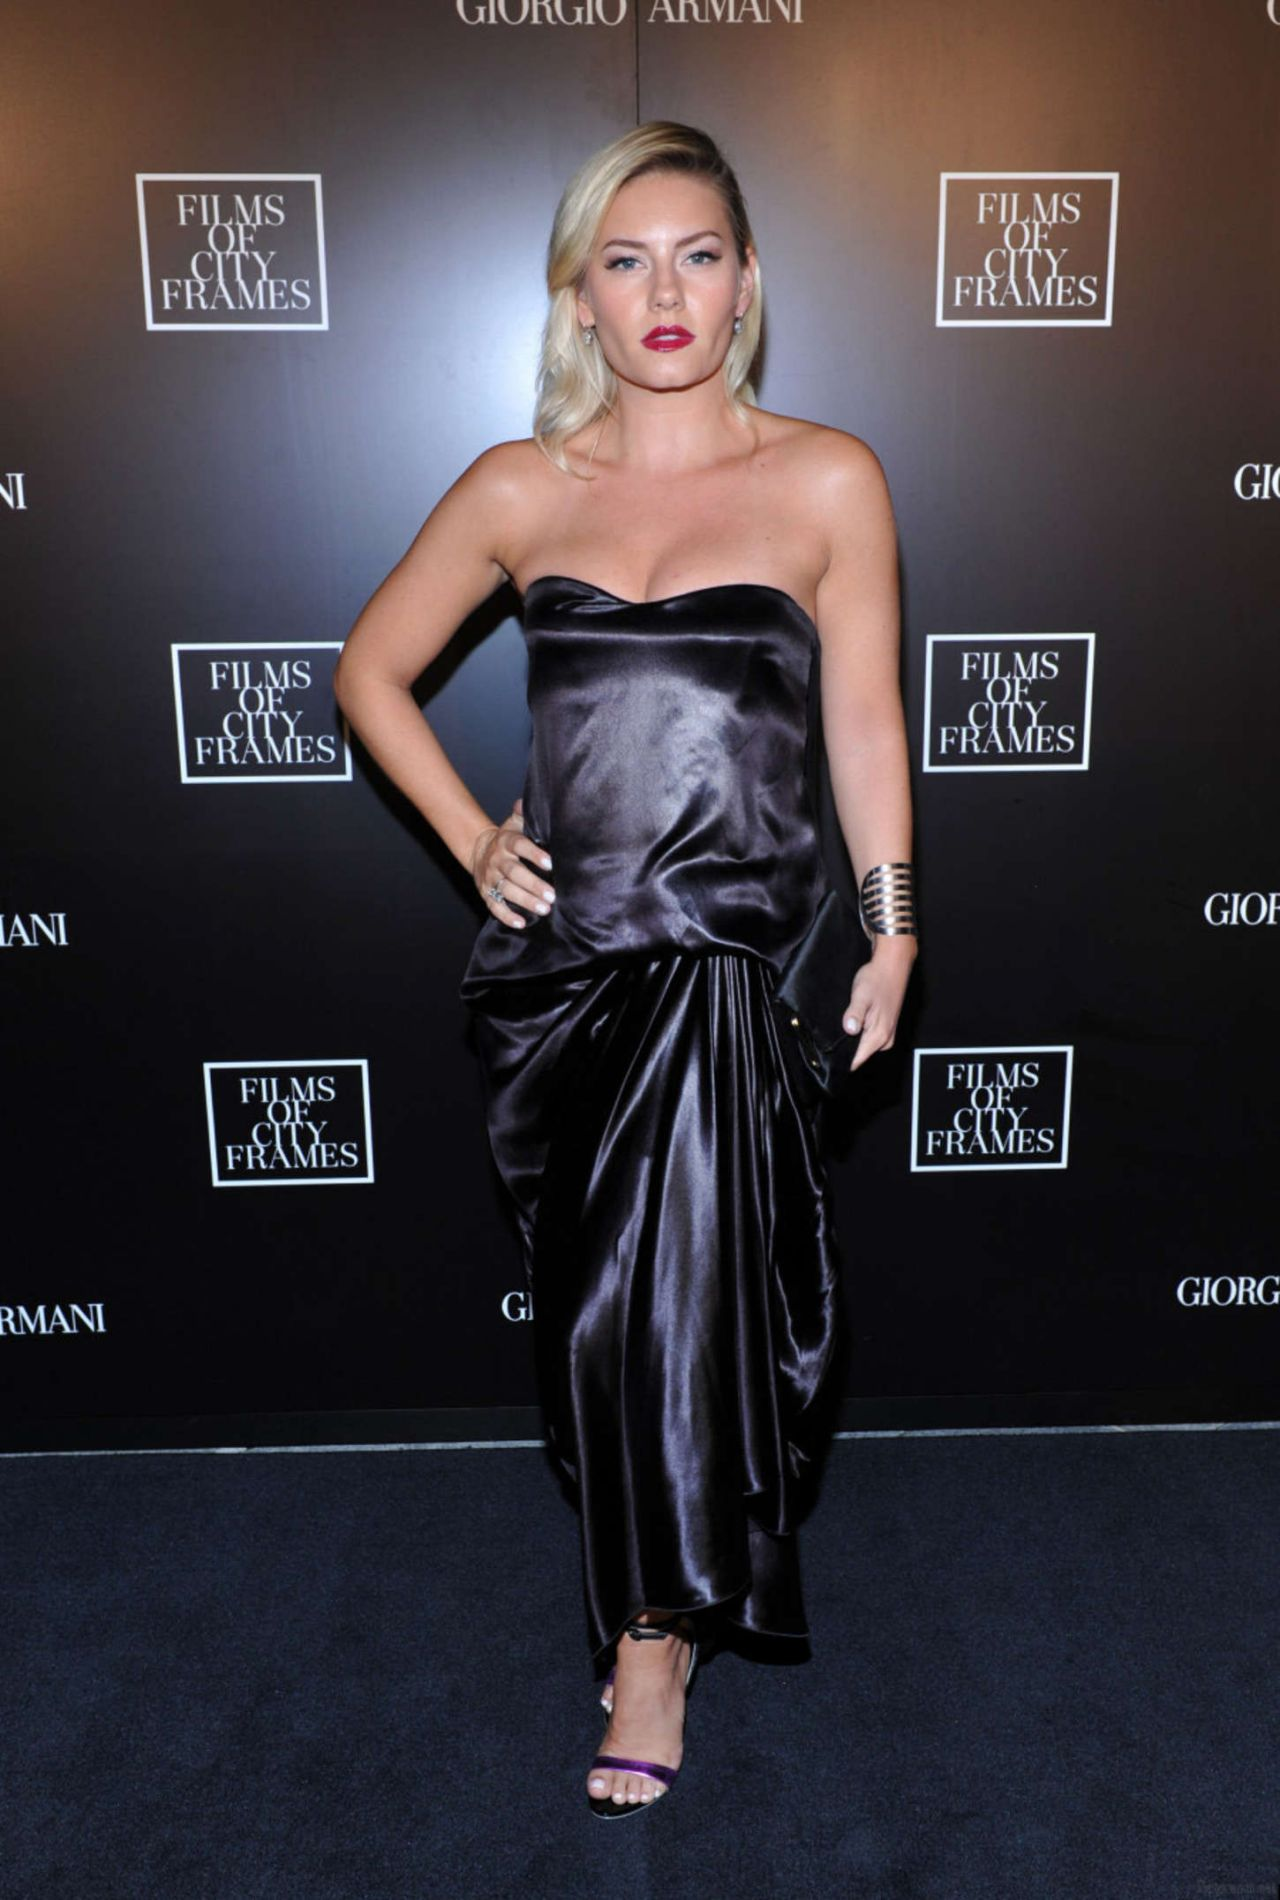 Elisha Cuthbert - Giorgio Armani Presents Films Of City Frames in Toronto